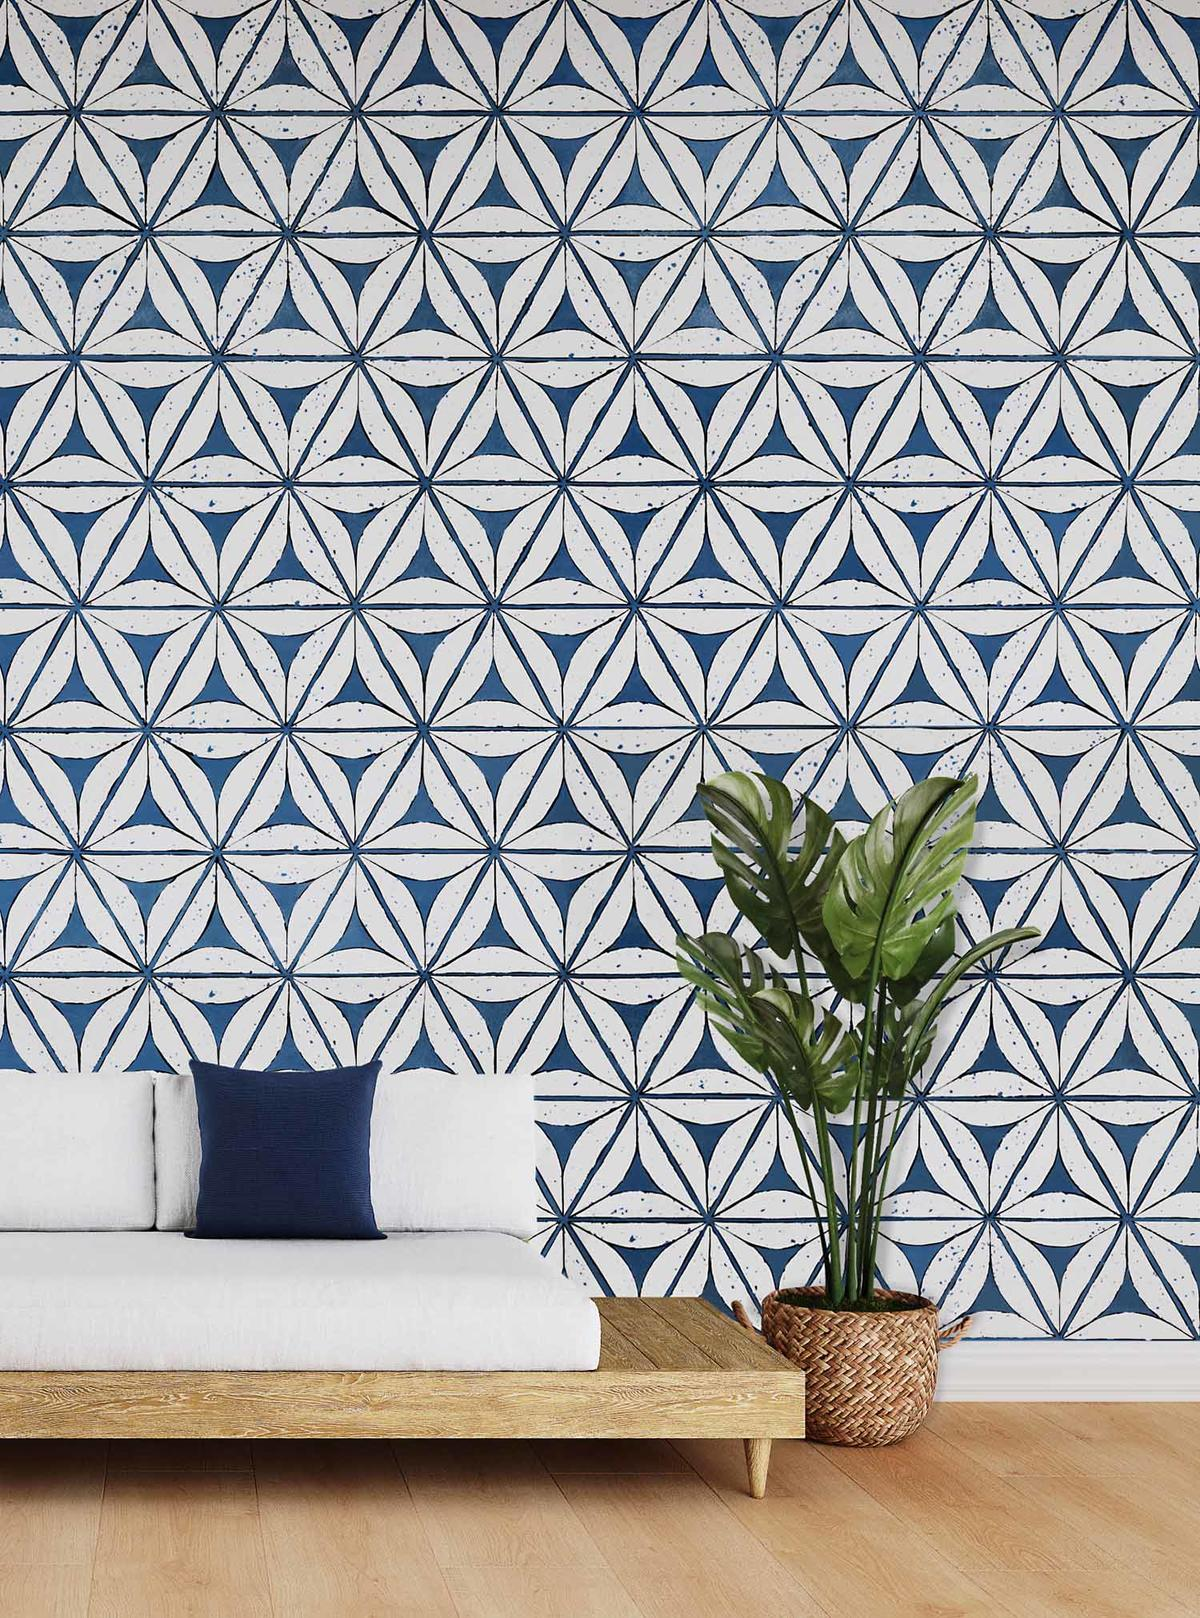 Breeze Block wallcovering from Phillip Jeffries